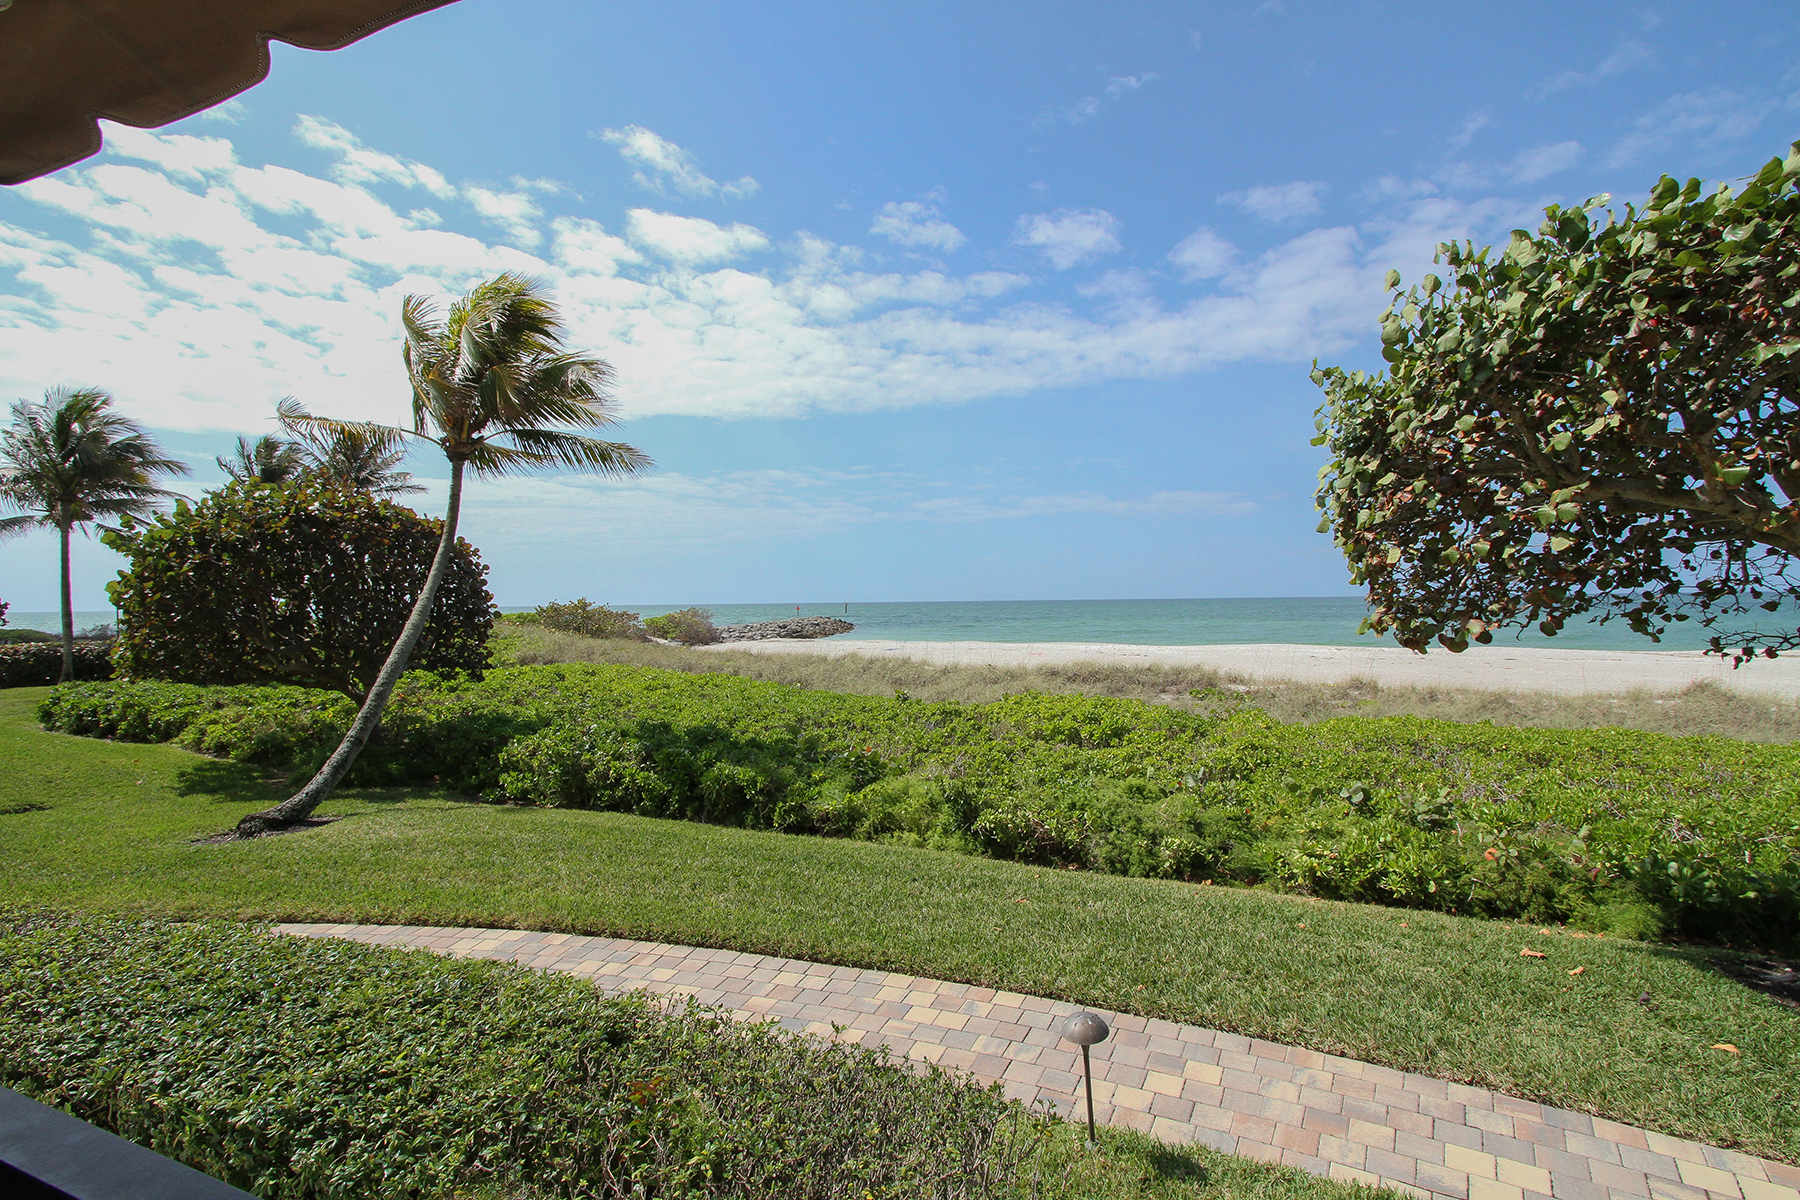 Condominium for Rent at MOORINGS-ADMIRALTY POINT 2357 Gulf Shore Blvd N 107, Naples, Florida 34103 United States